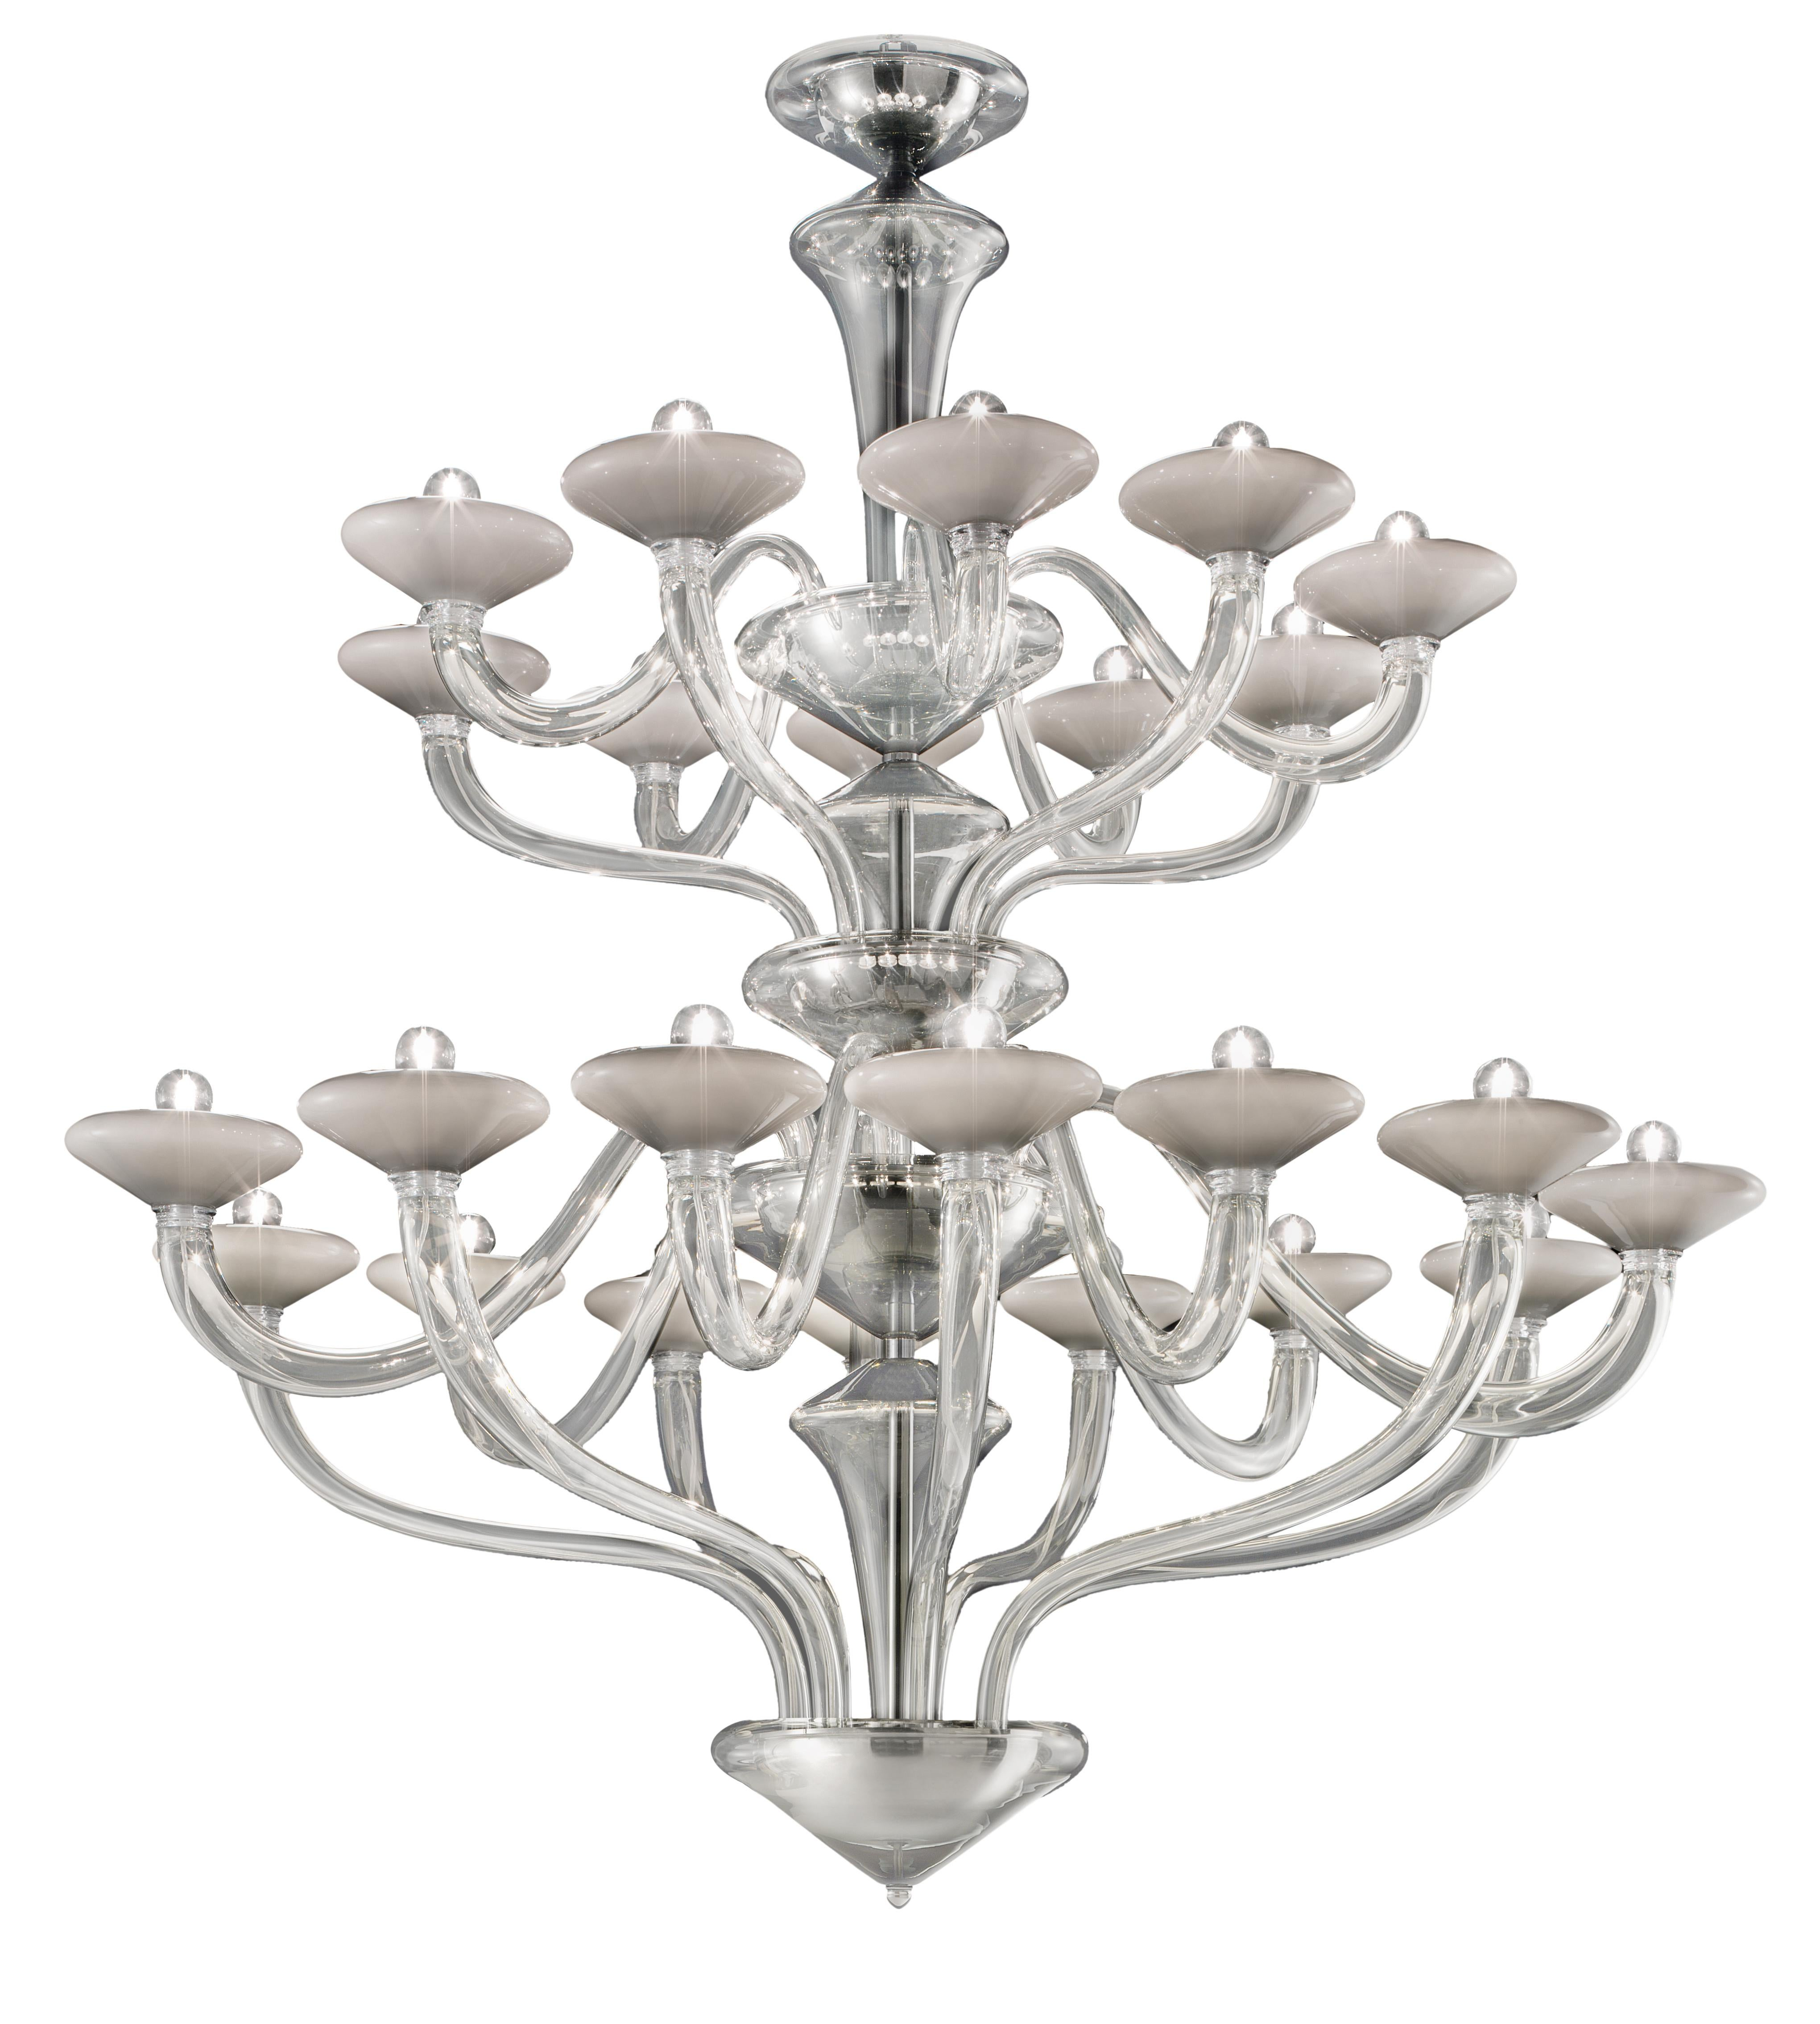 Windsor 5676 24 Chandelier in Glass, by Barovier&Toso